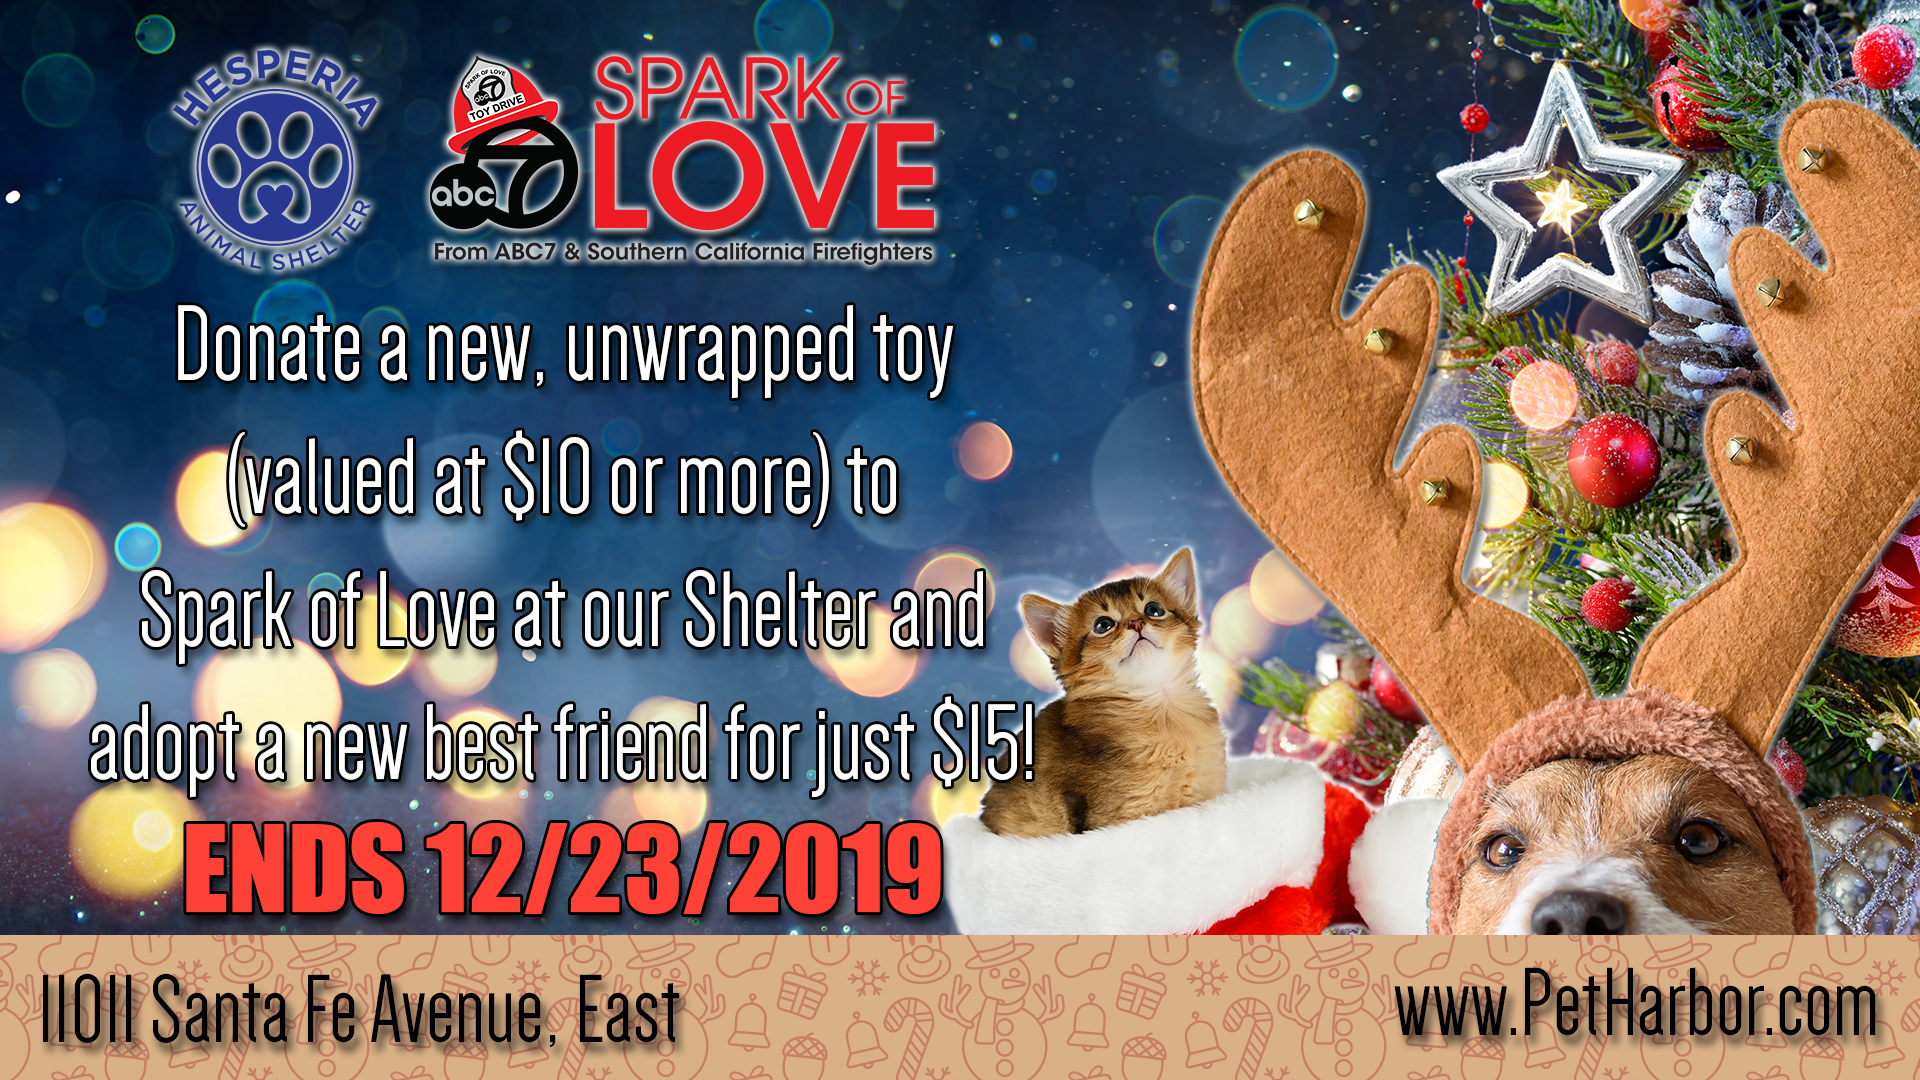 2019-Spark-of-Love-Adoption-Ad